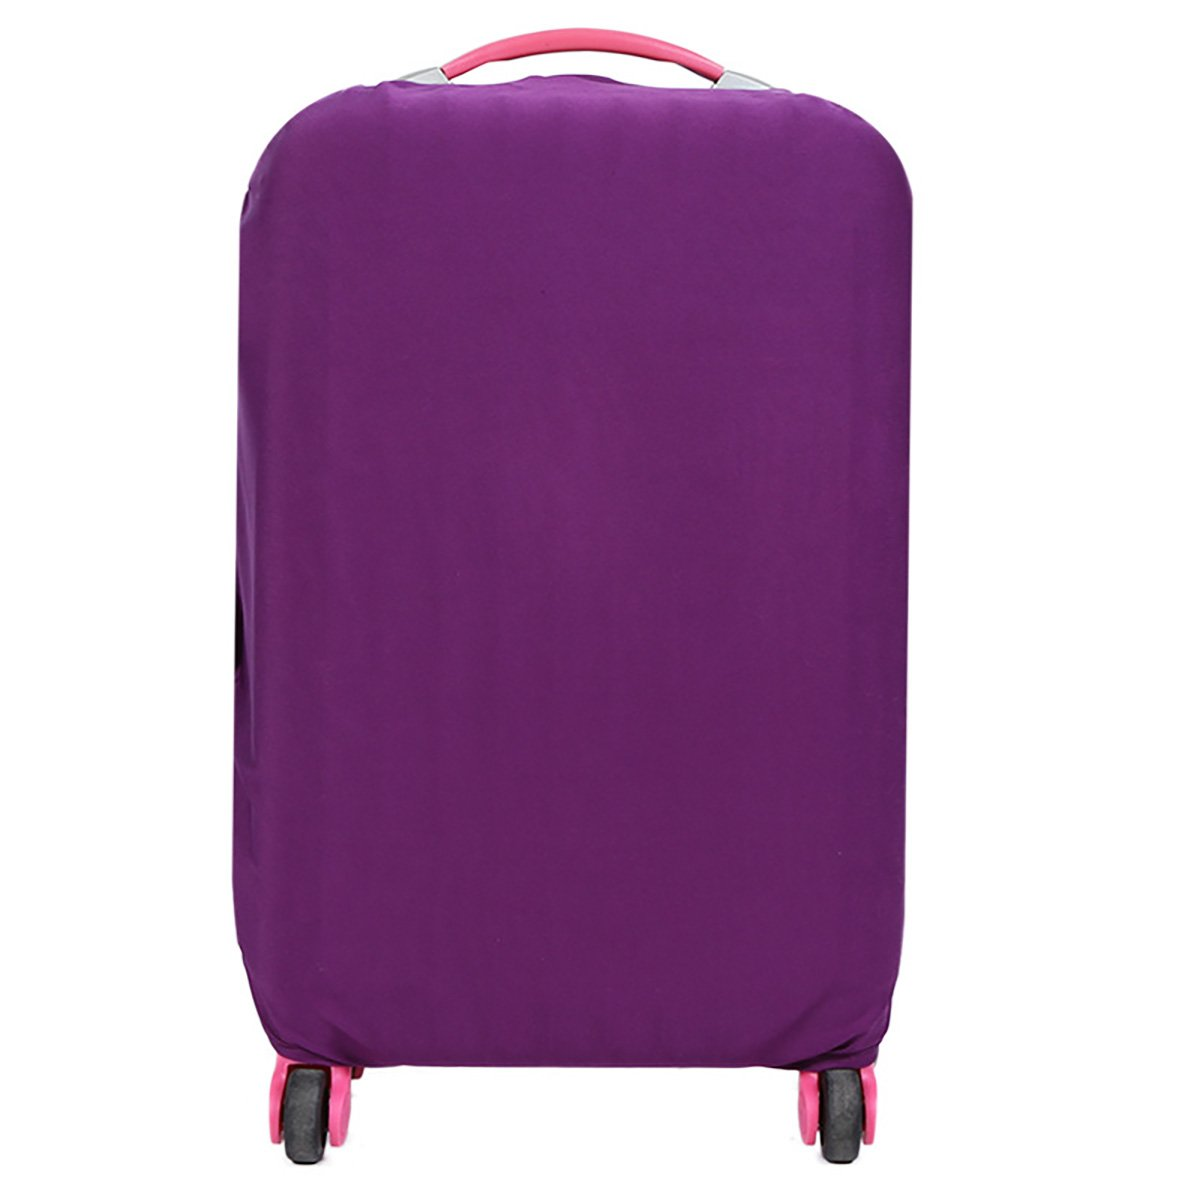 THEE Travel Luggage Elastic Cover Suitcase Washable Anti-Scratch Stretchy Protector SJJJBW1060r-m